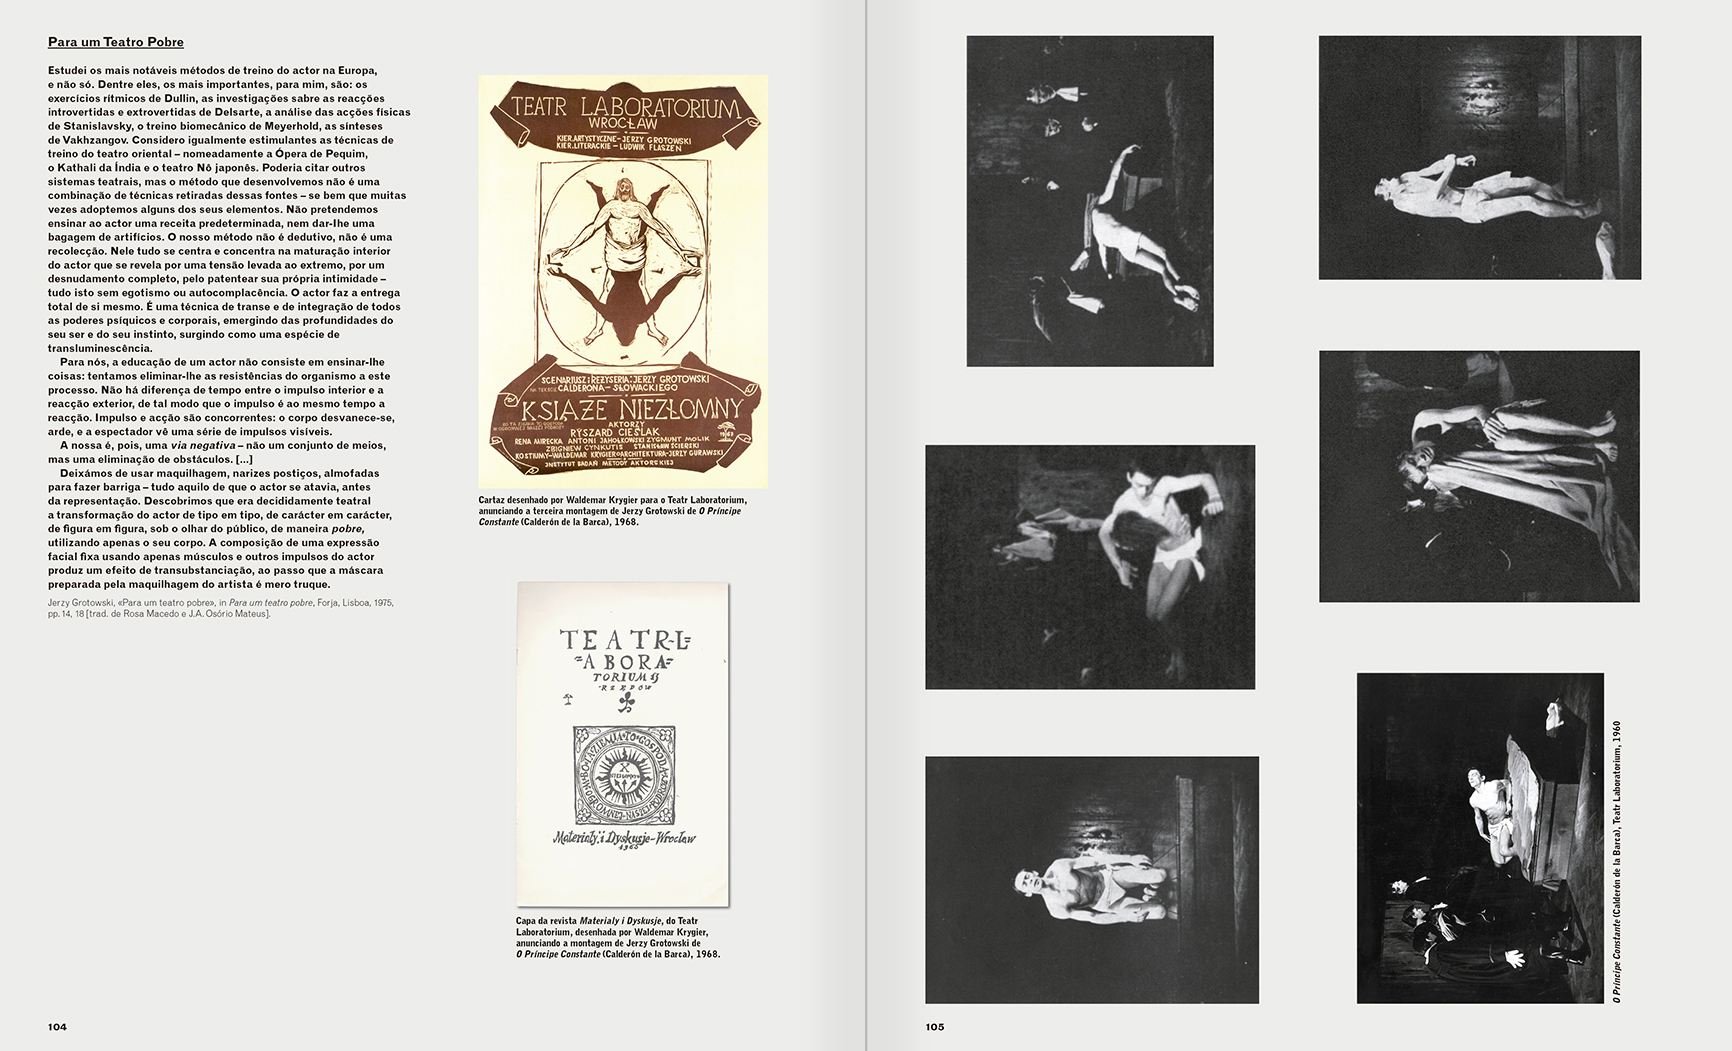 Selection from the catalogue 'A Theater without Theater', pages 104 and 105